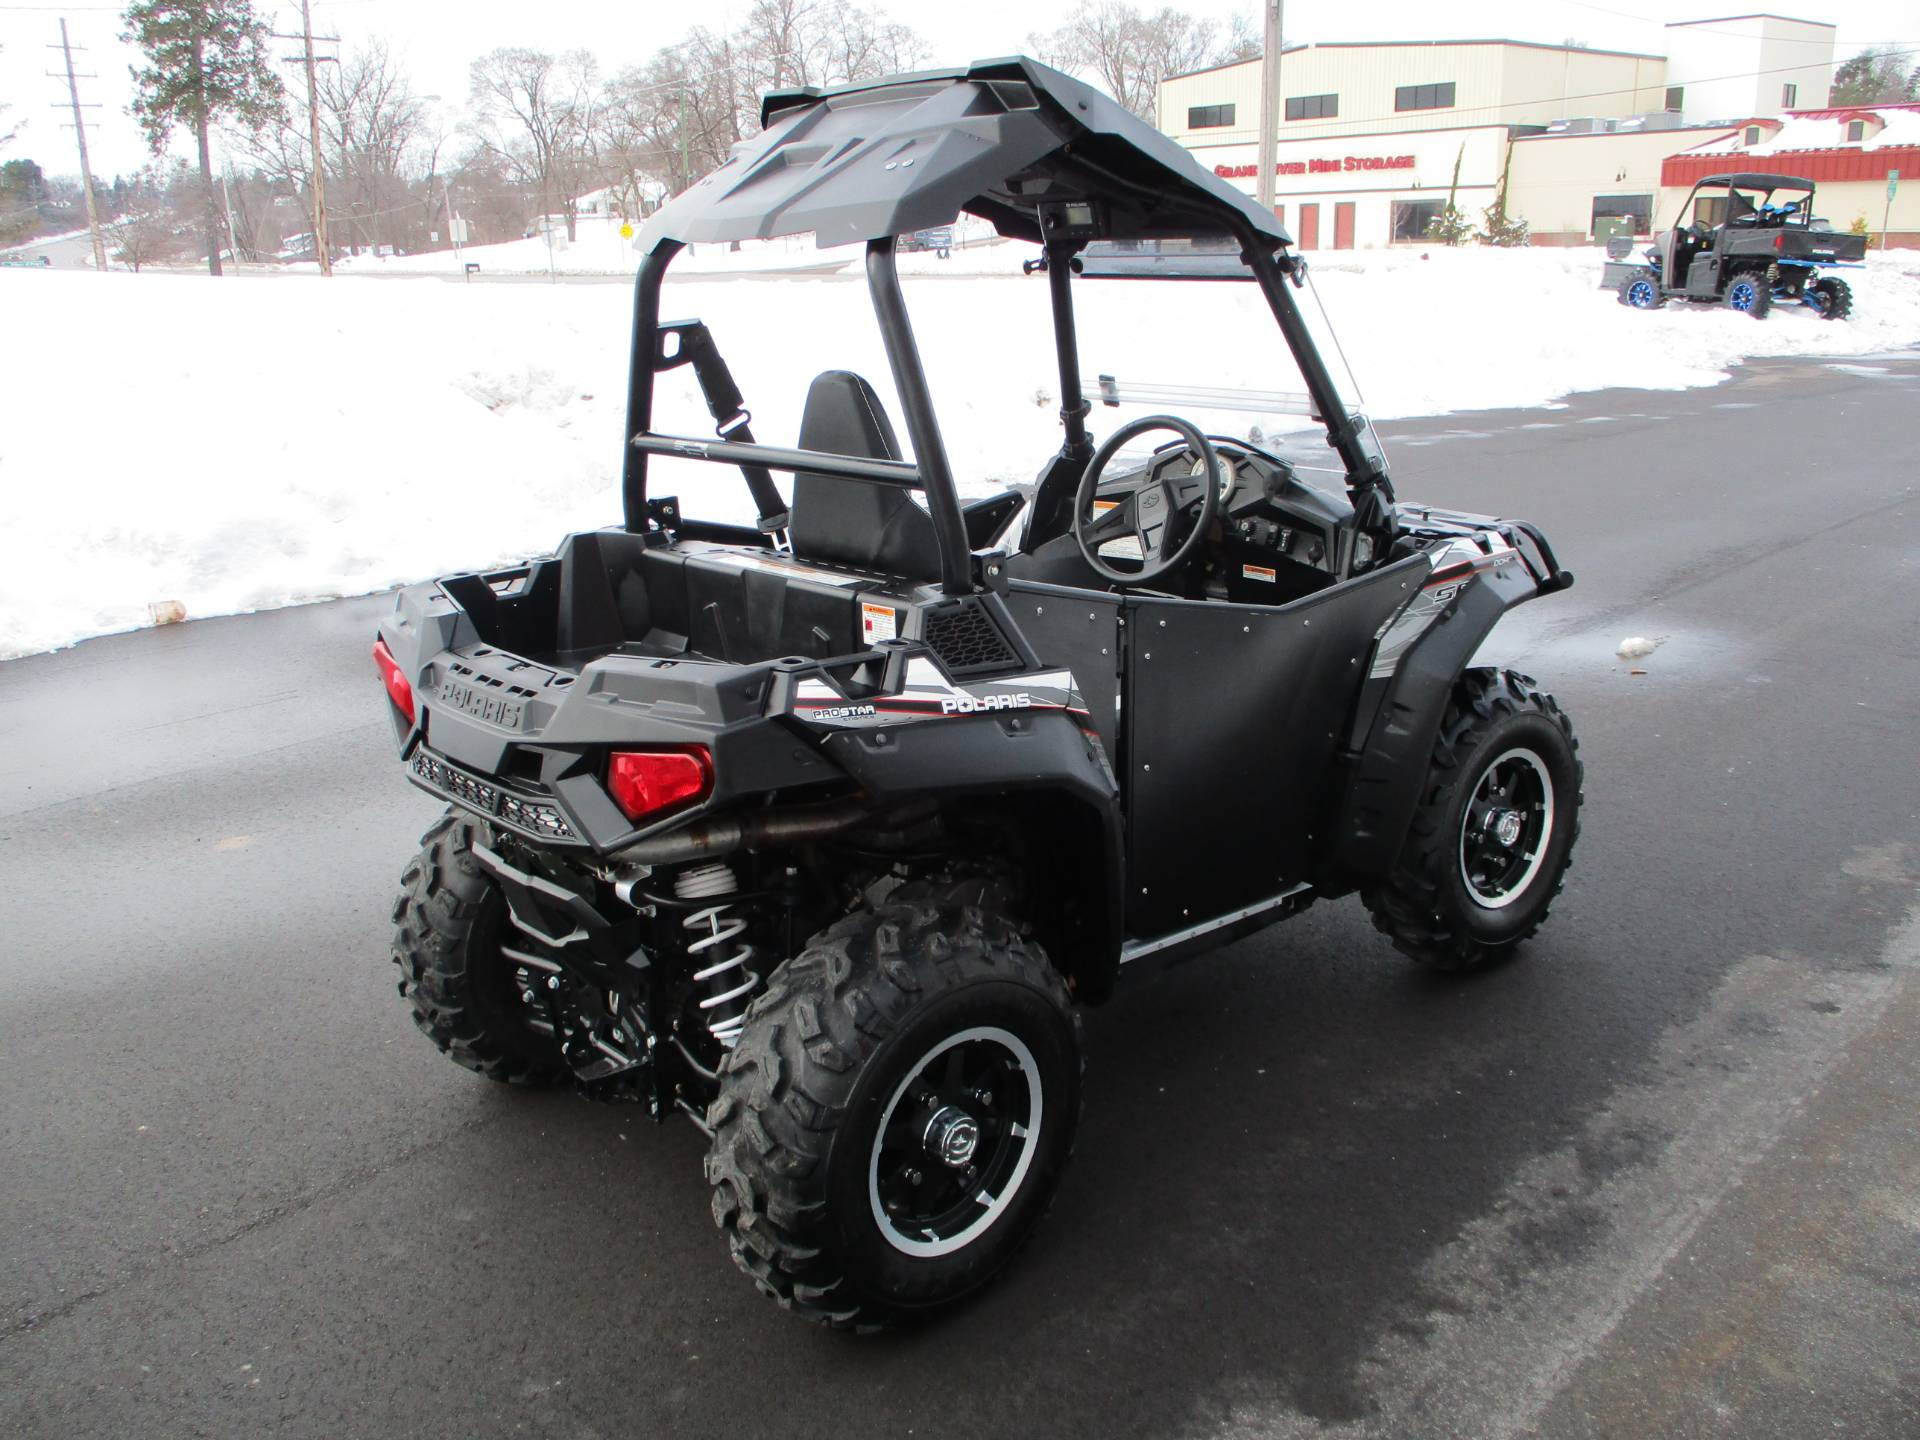 2016 Polaris ACE 900 SP in Howell, Michigan - Photo 16